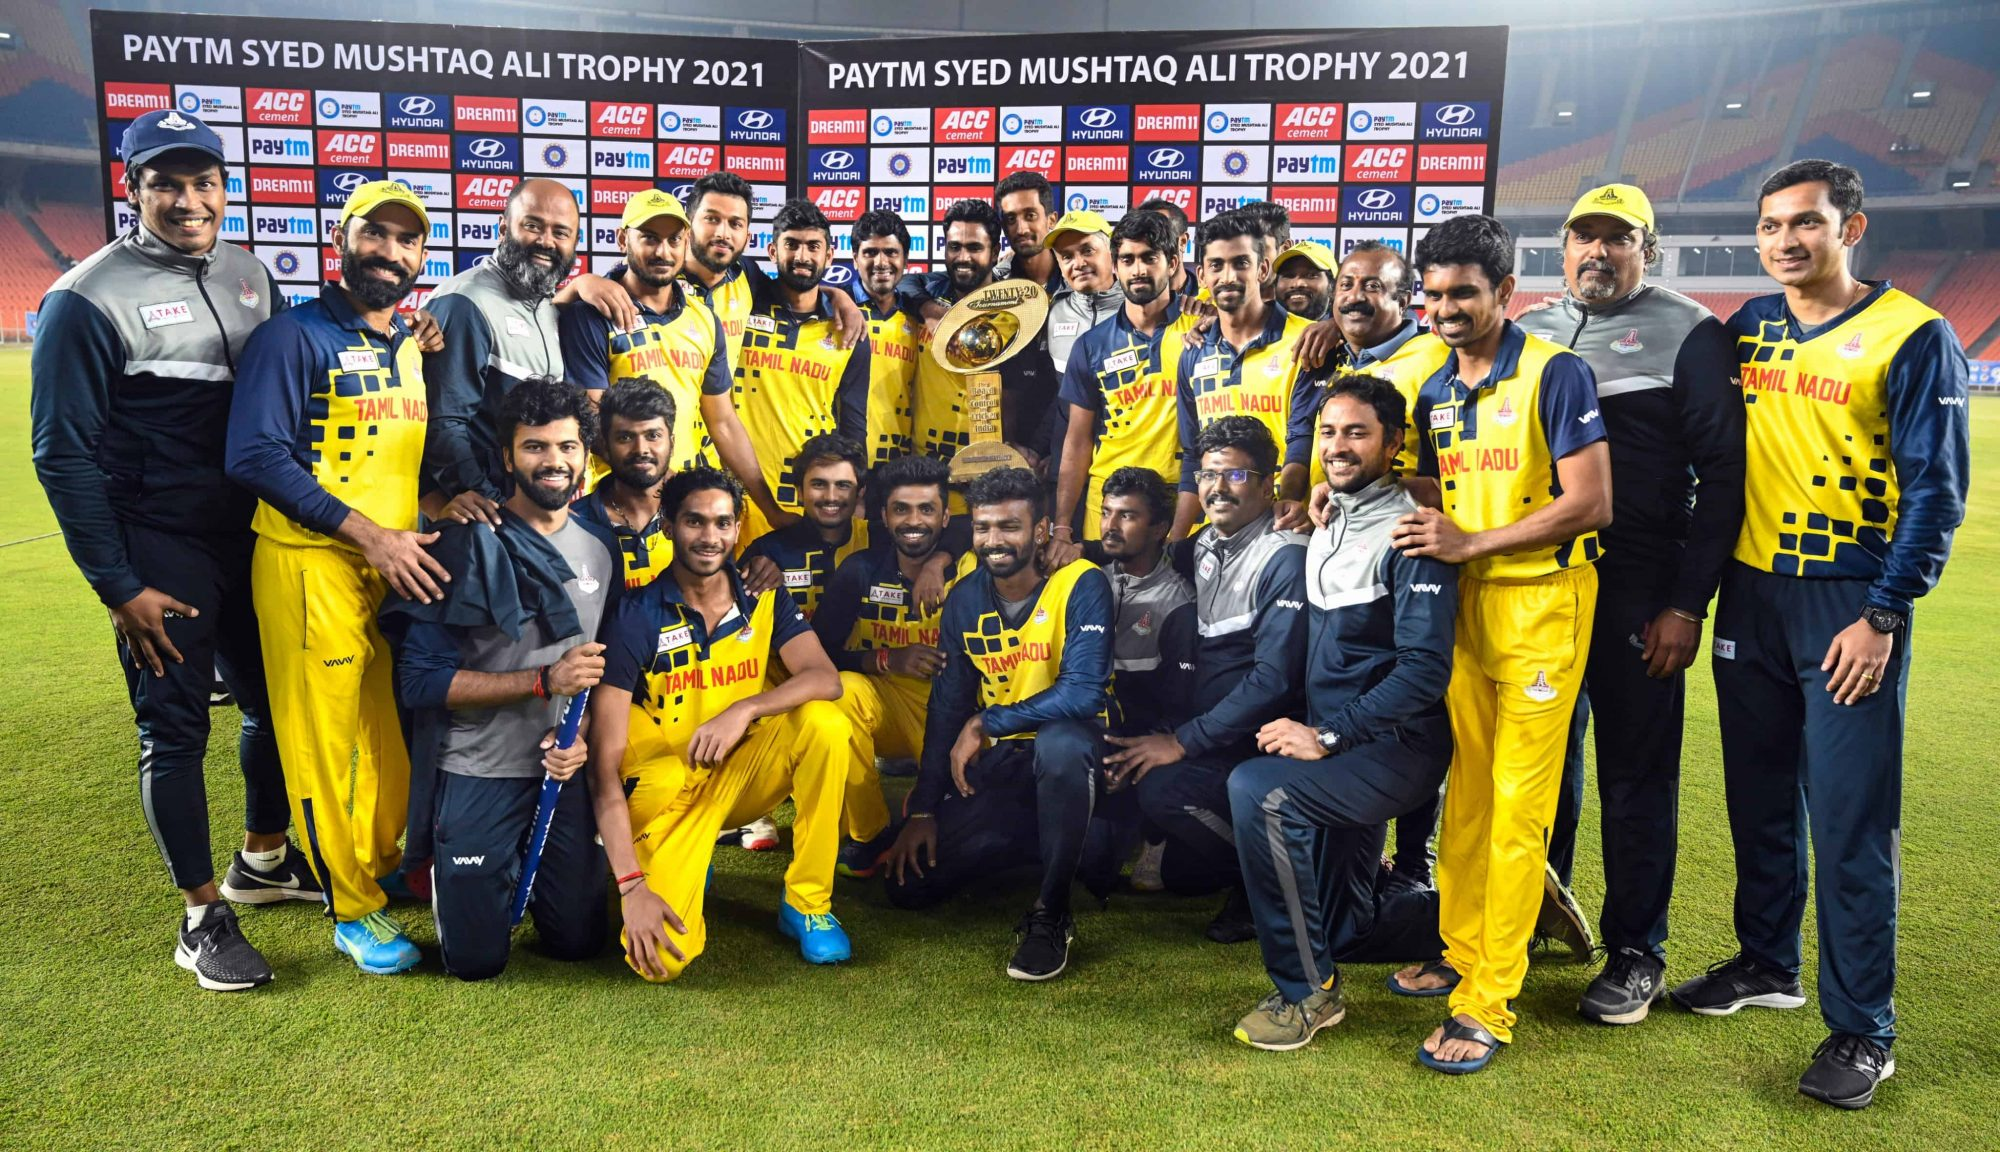 Tamil Nady Lifts Syed Mushtaq Ali Trophy For The Second Time, Defeating Baroda by 7 Wickets